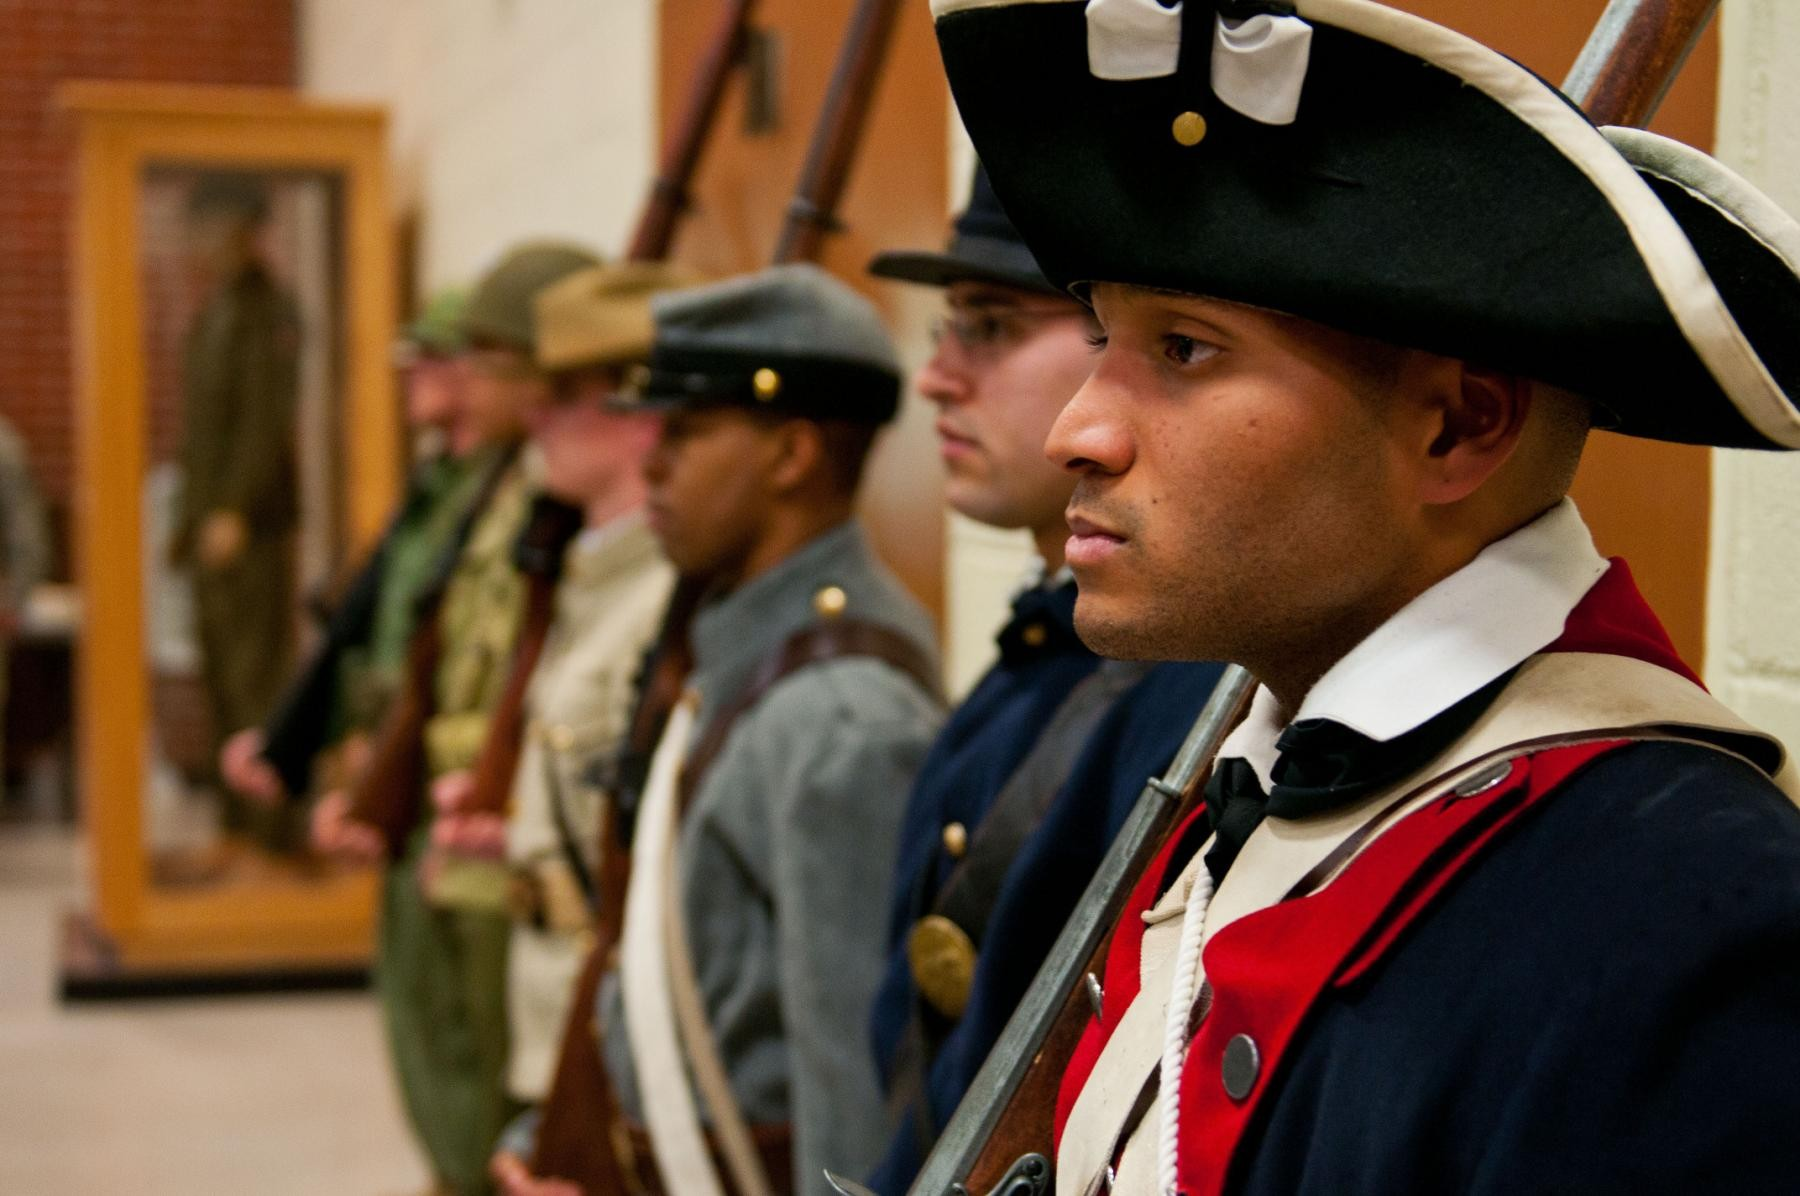 Keeping traditions alive | Article | The United States Army